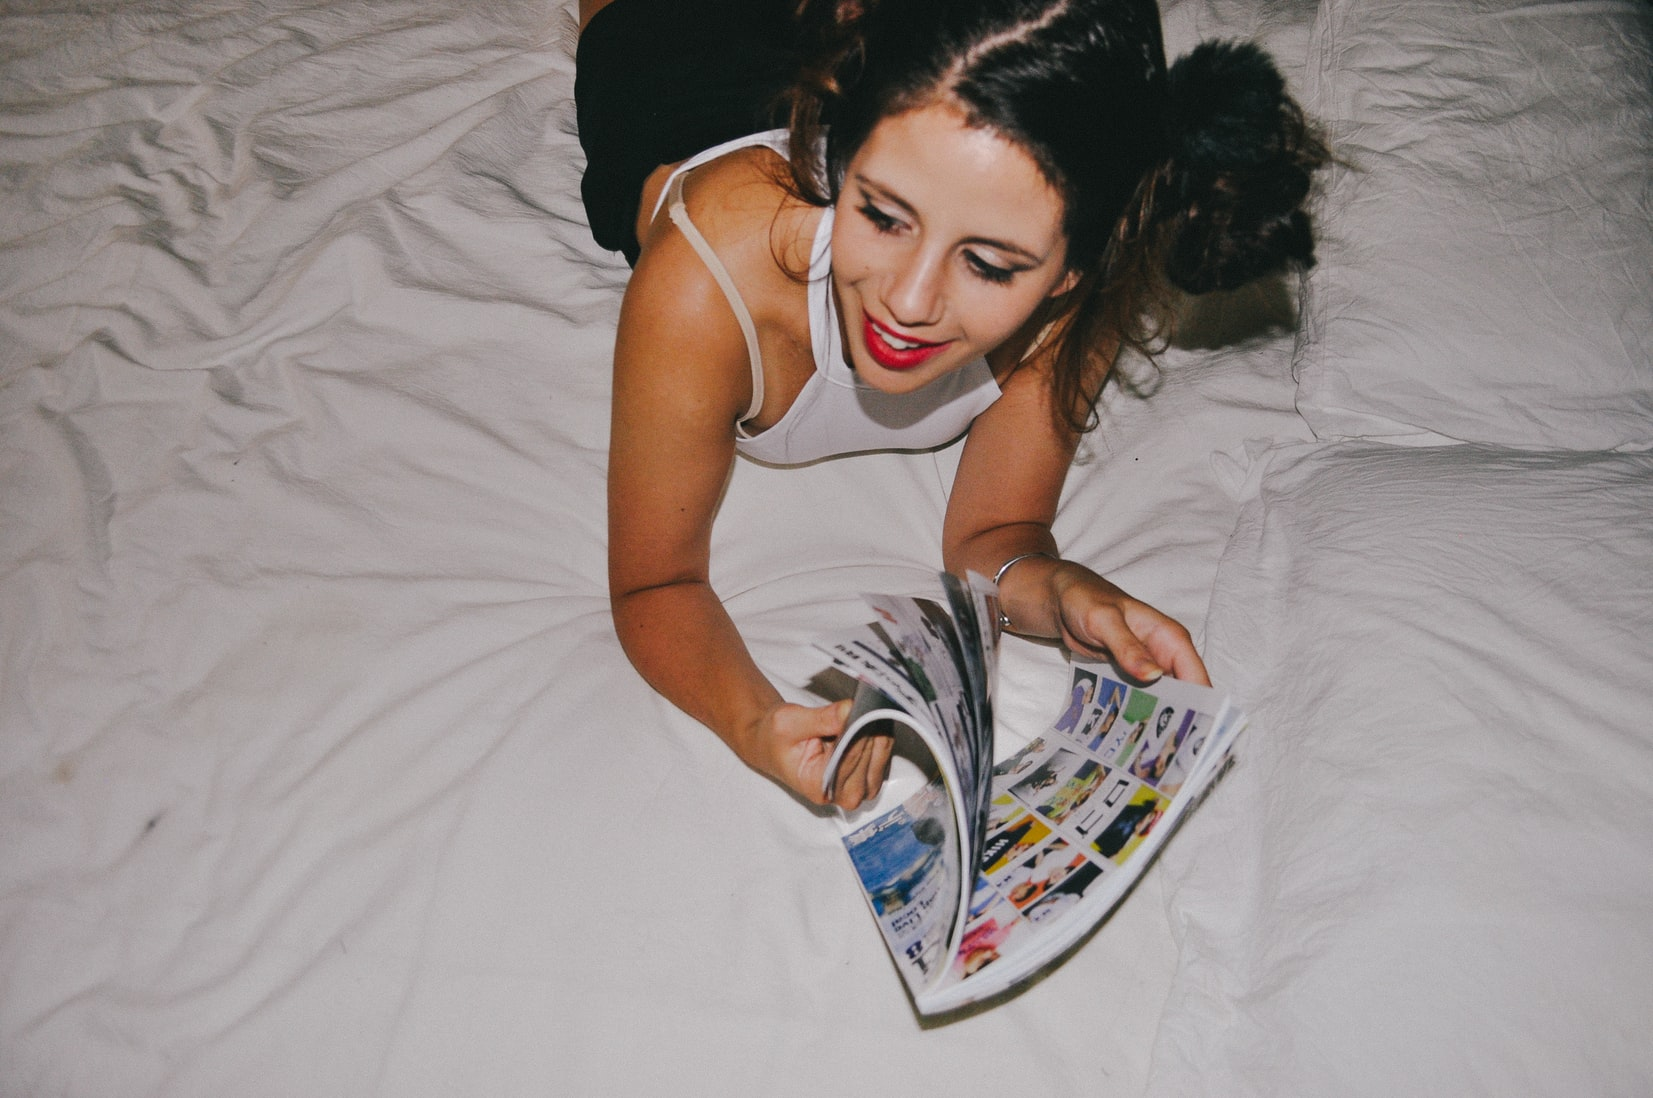 Young brunette woman laughing while on bed reading magazine